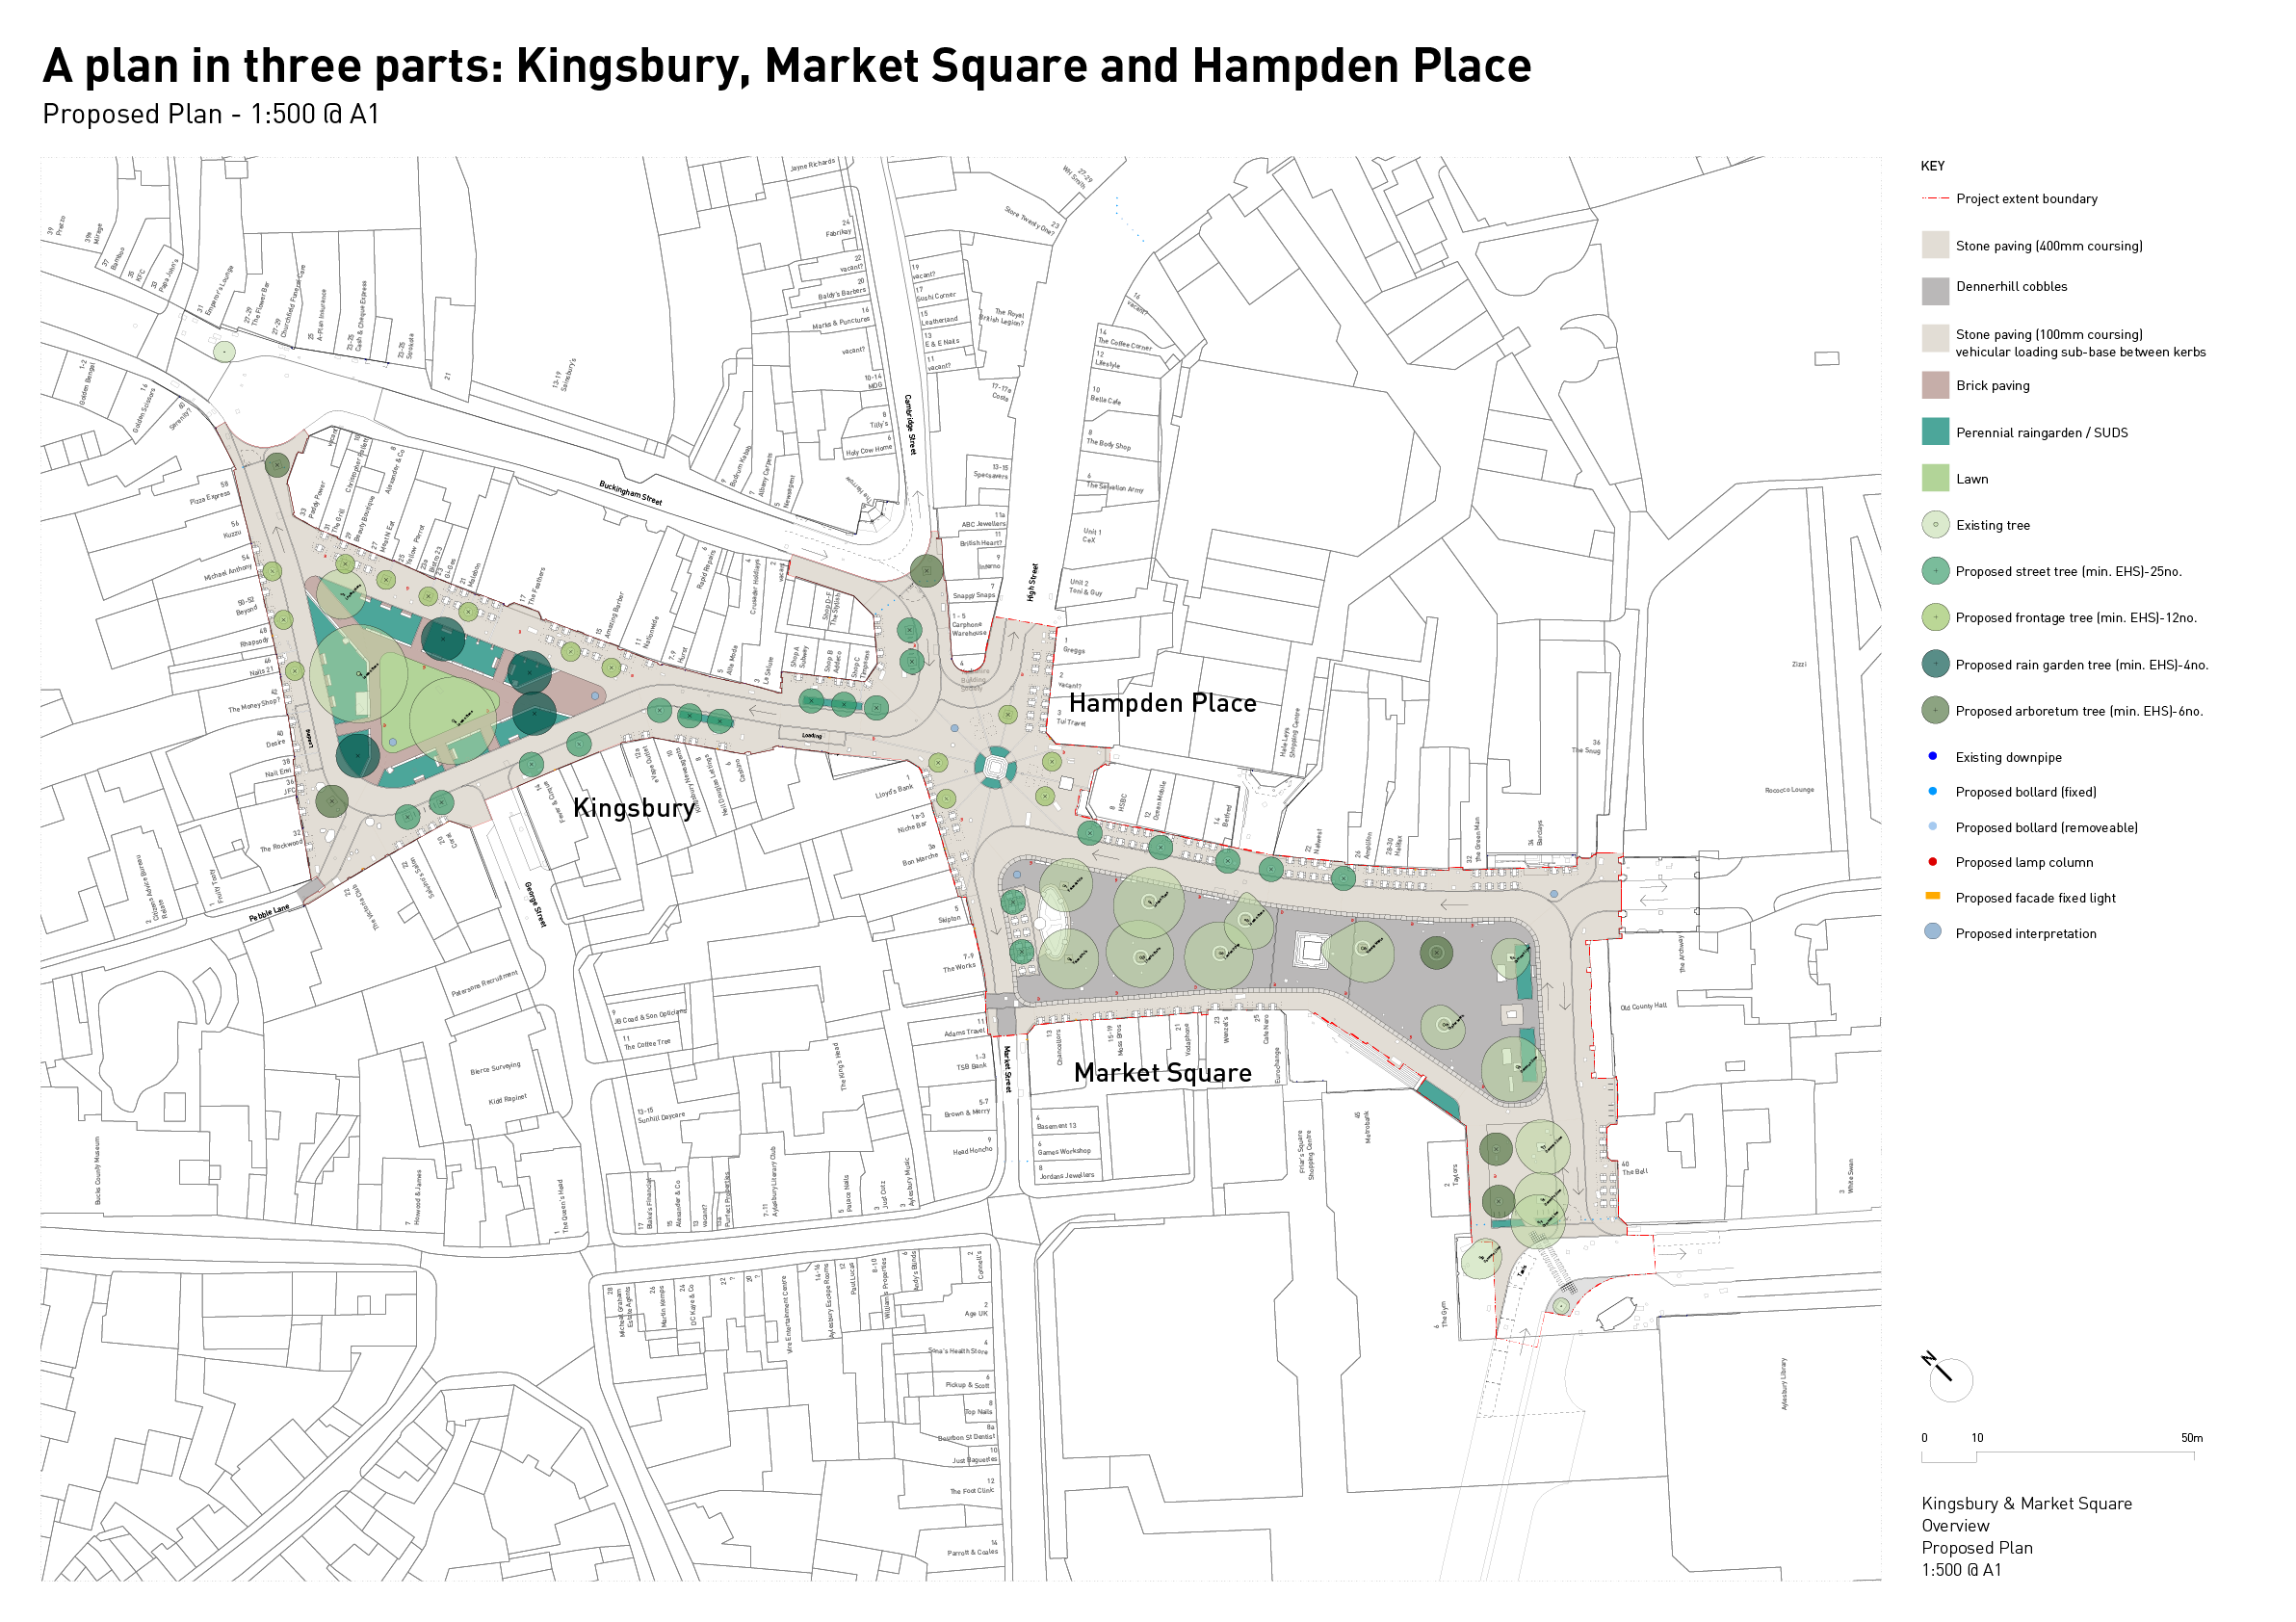 Overview plan of Kingsbury, Market Square and Hampden Place